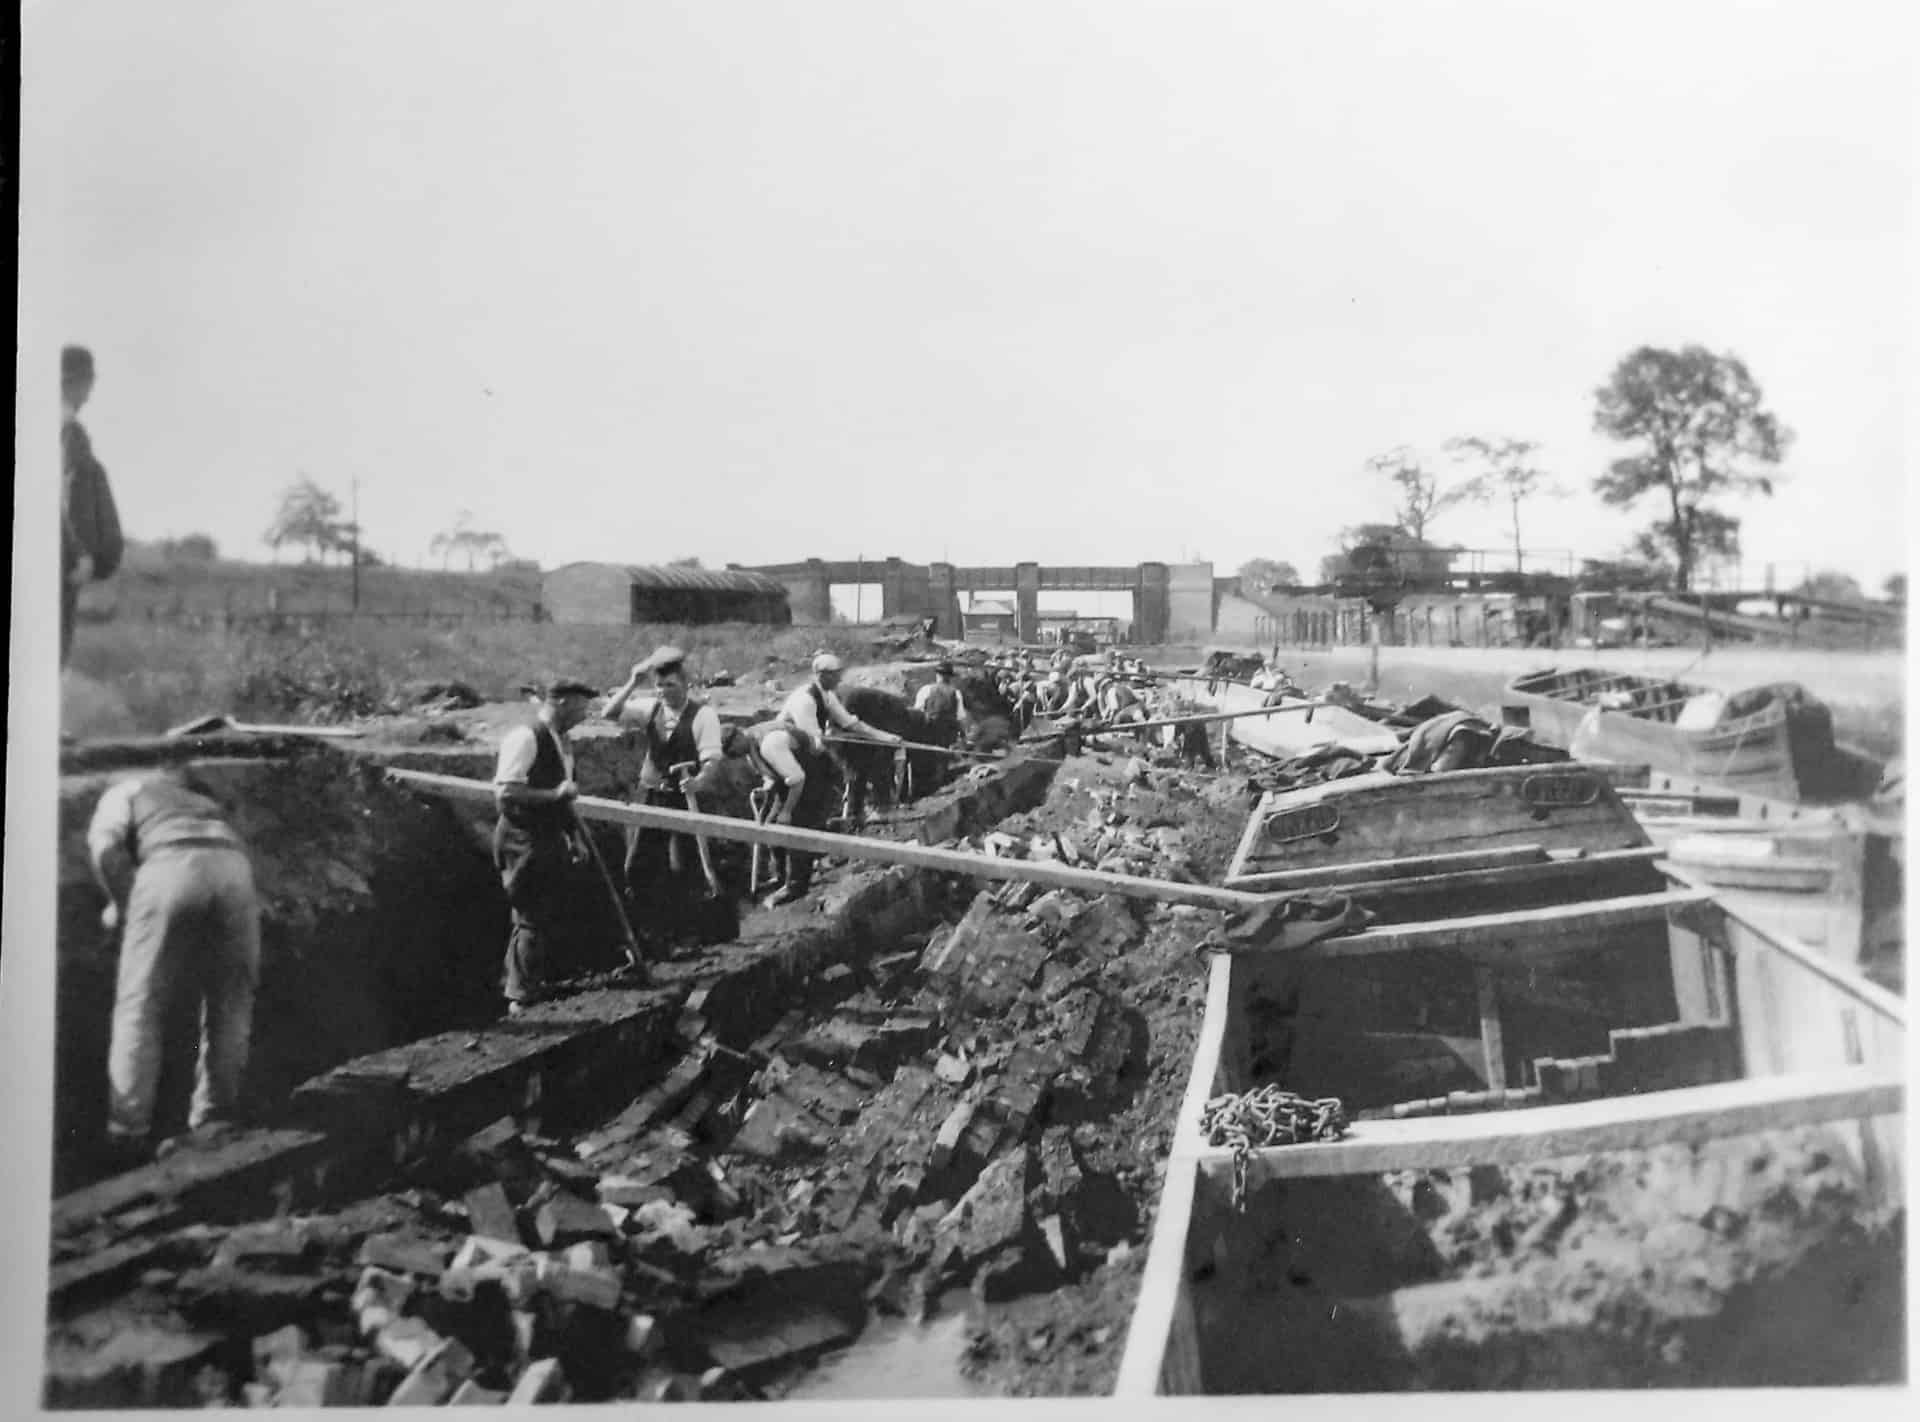 Canal repairs, unknown location, c 1950s